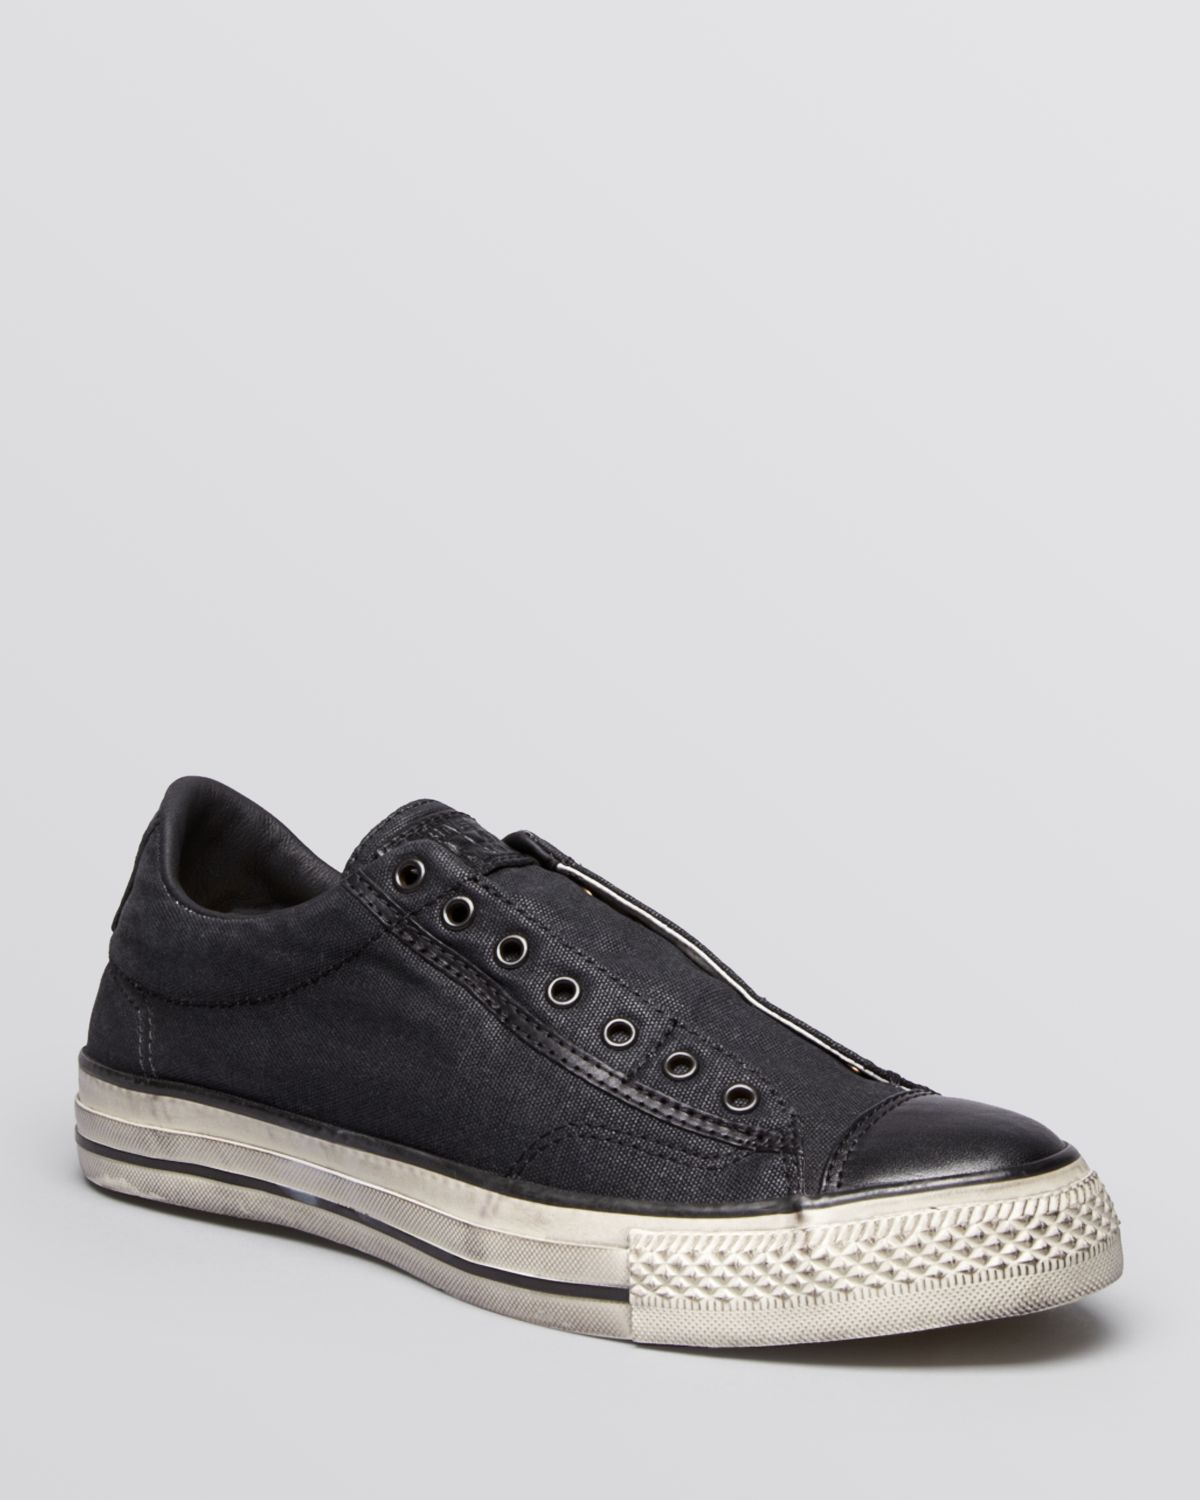 77123d523d0 Lyst - Converse By John Varvatos Chuck Taylor All Star Laceless ...